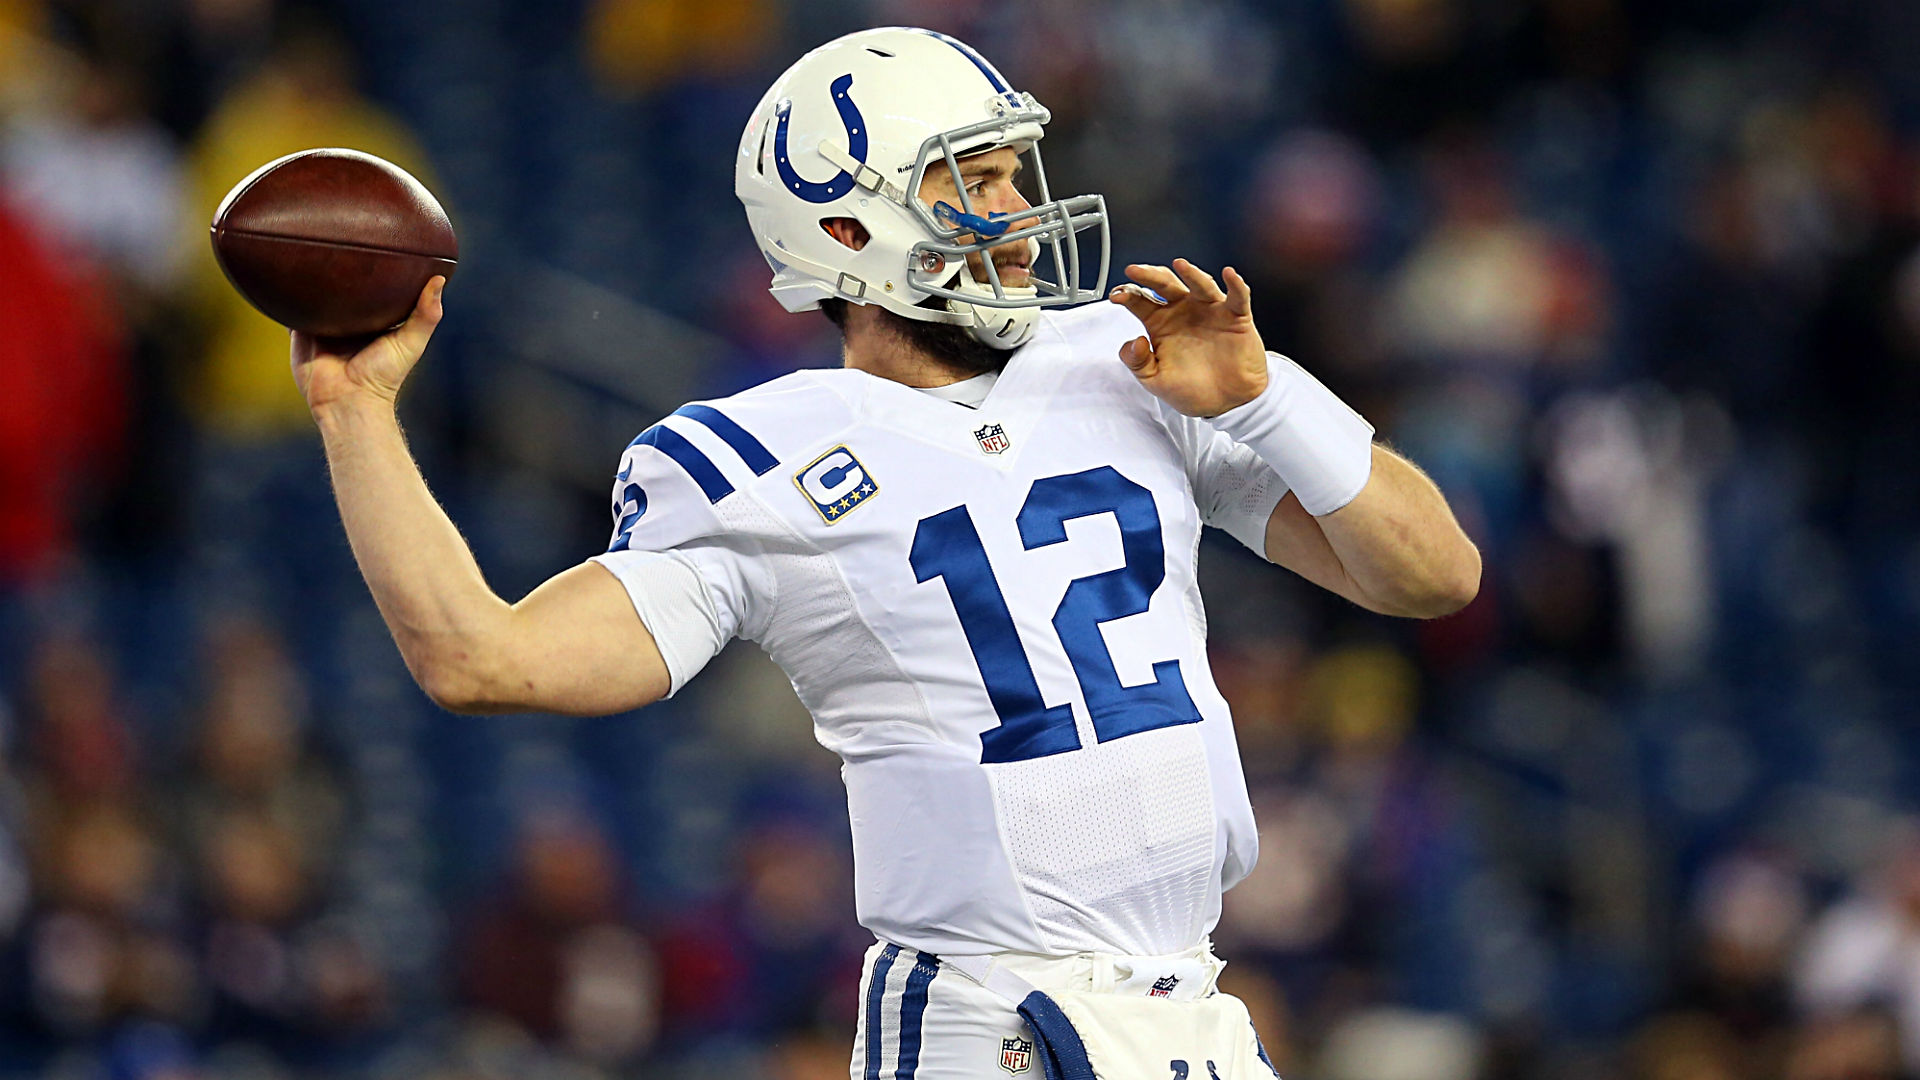 Colts taking Andrew Luck s return to practice slowly